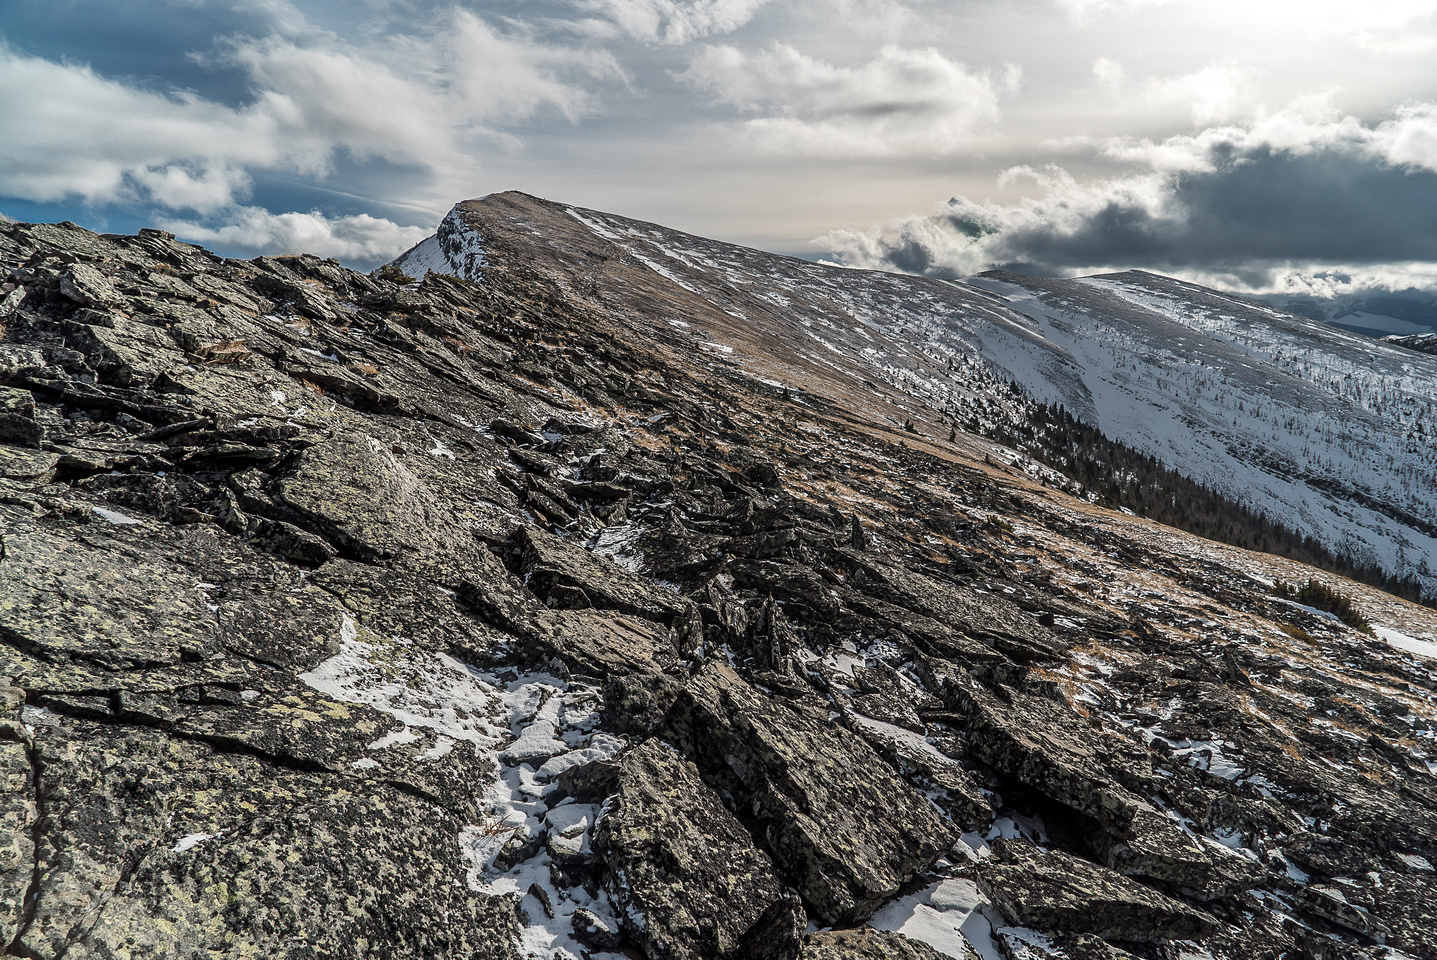 Part of the broken ridge traverse as we work our way up to the summit of Monad where Raf awaits patiently.